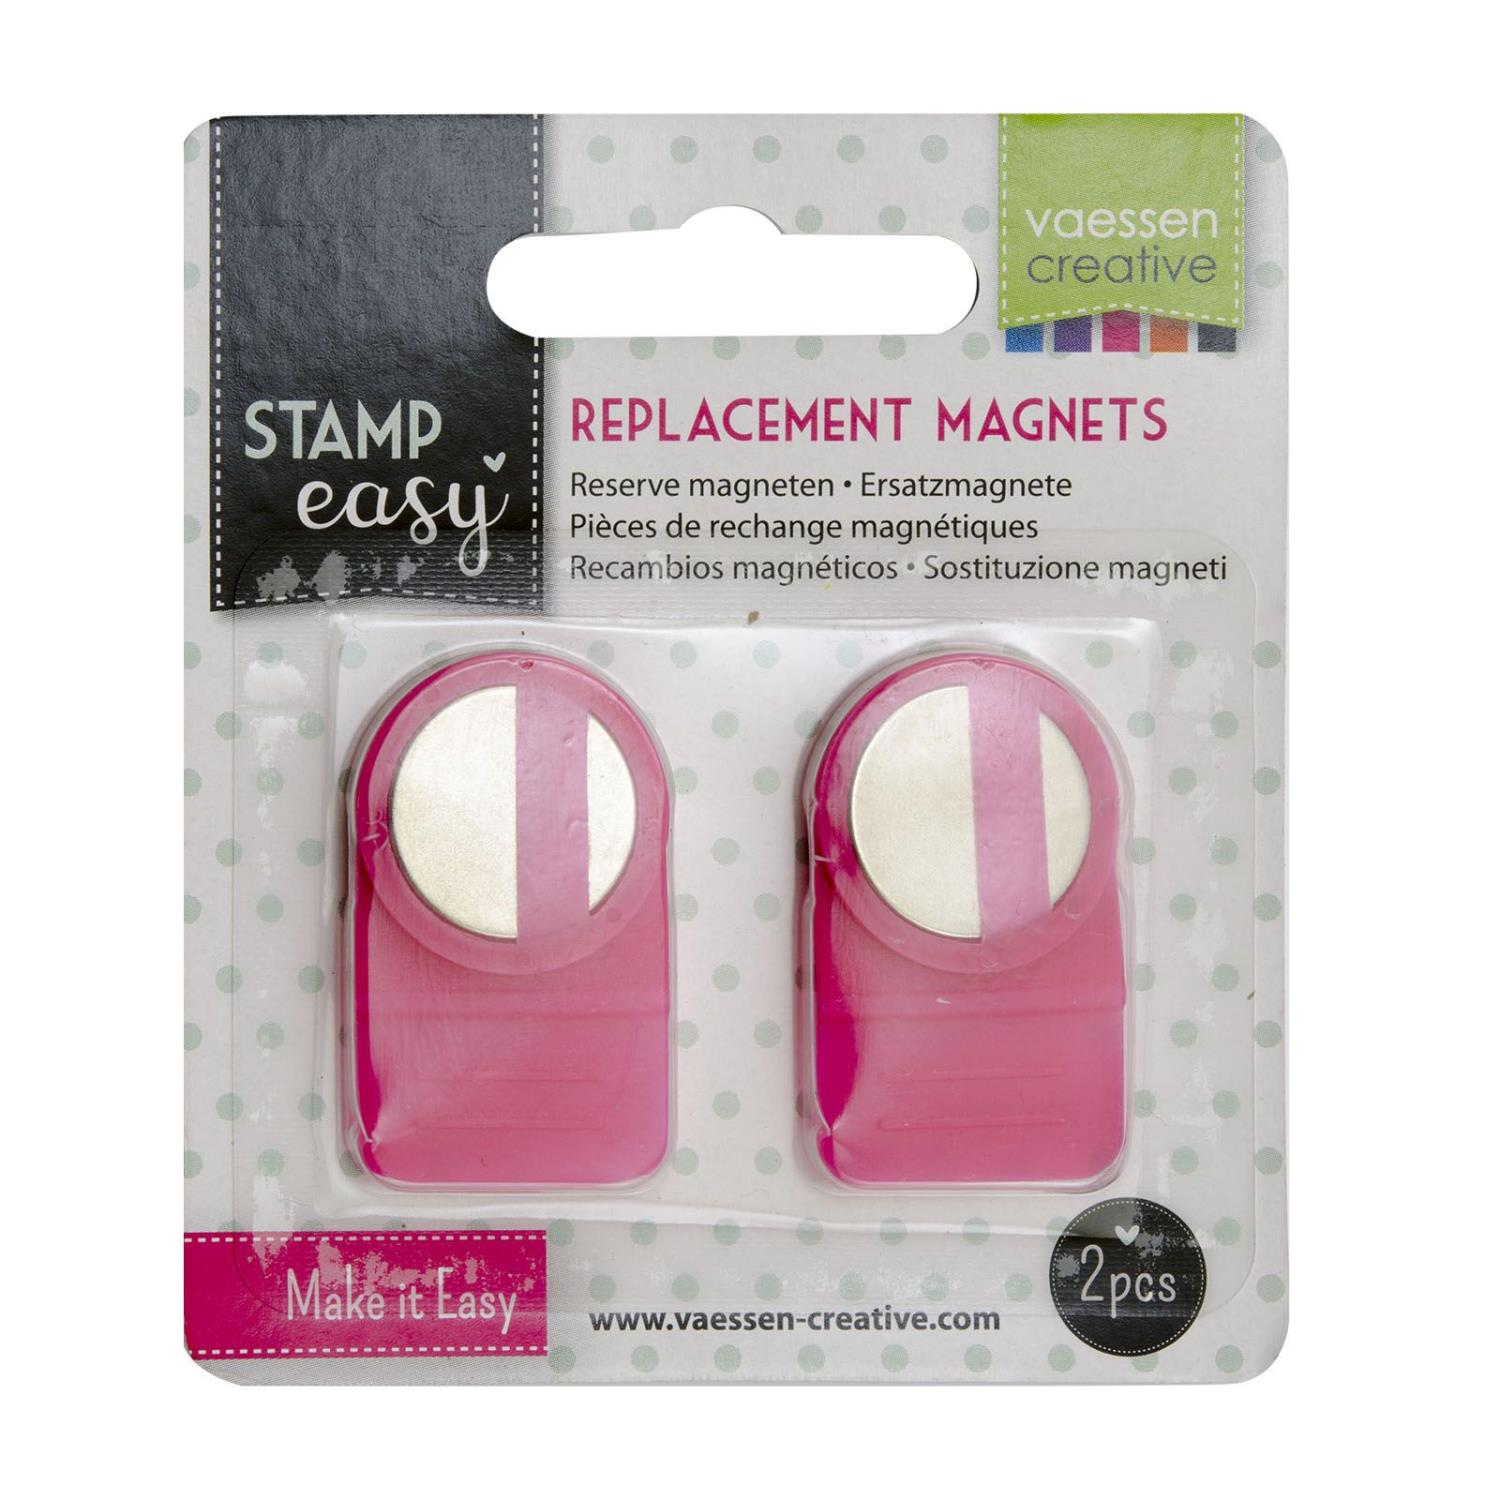 Stamp Easy Magnet replacement x2